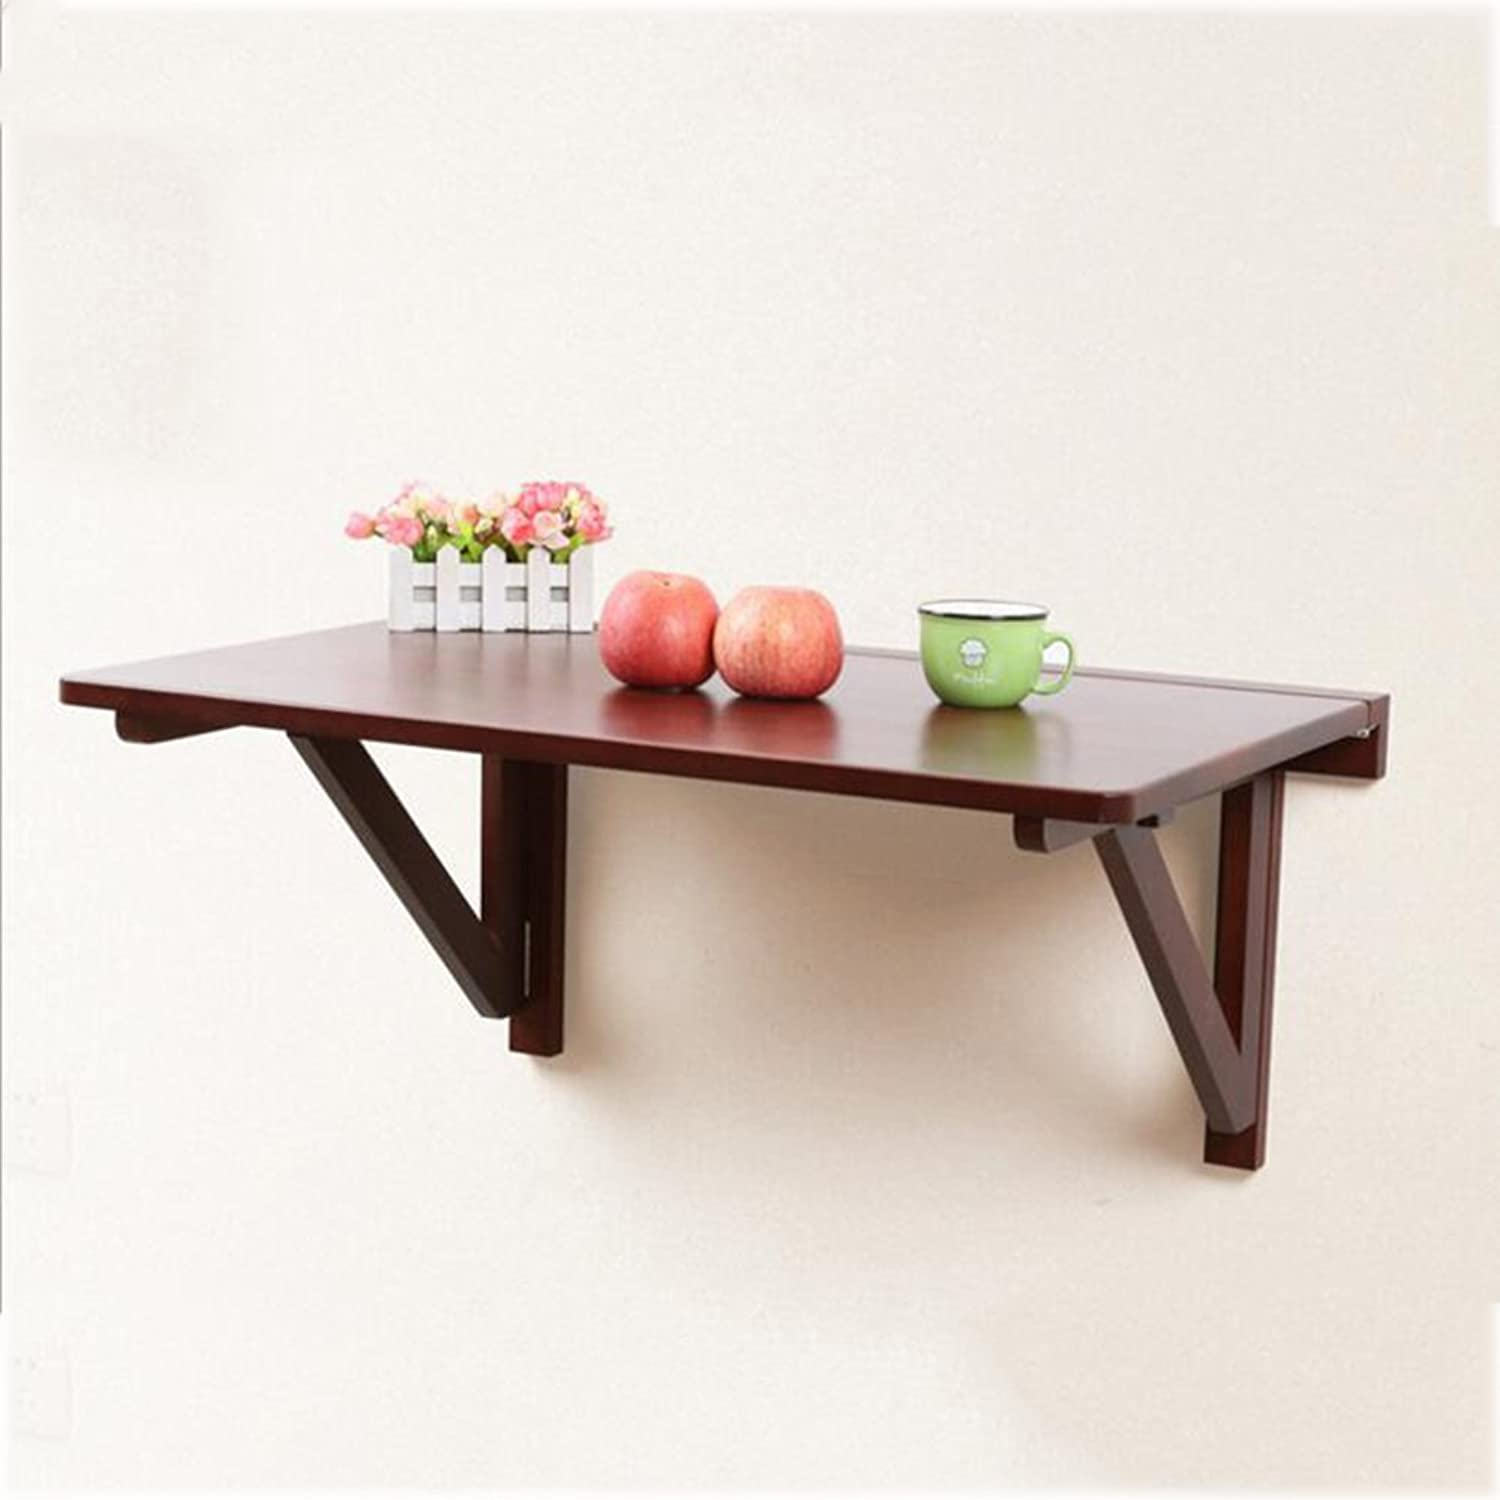 MEIDUO Drop-Leaf Table Solid Wood Folding Table Wall Hanging Table Multiple Sizes (color   Wood red, Size   6040cm)